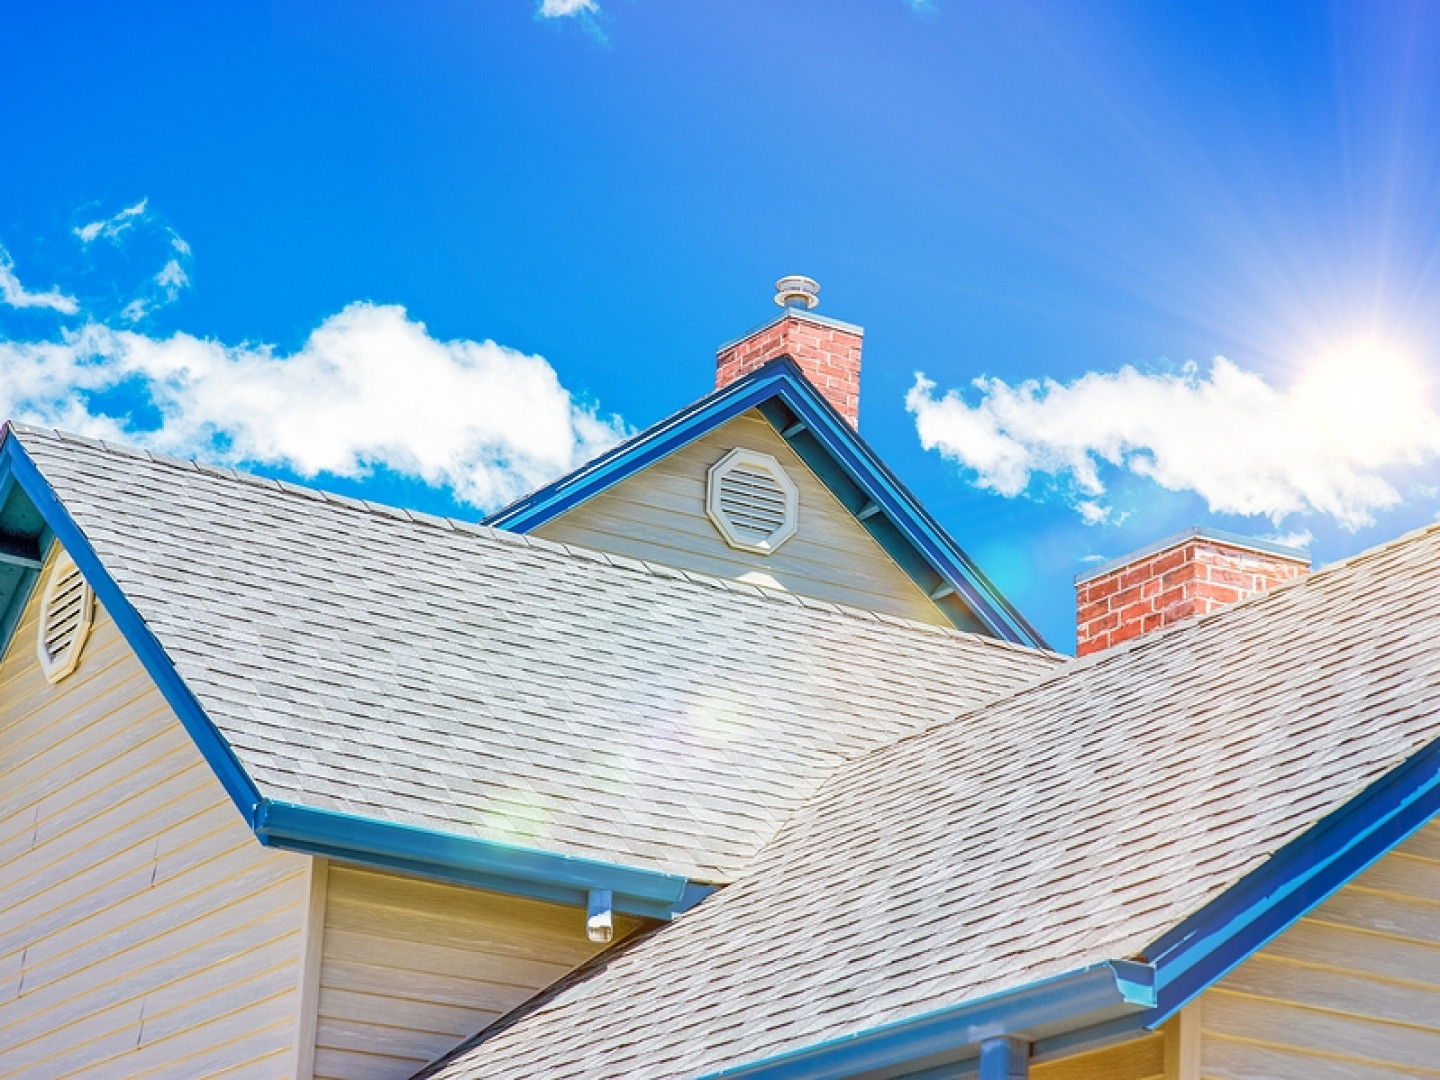 Protect Your Home With a New Roof